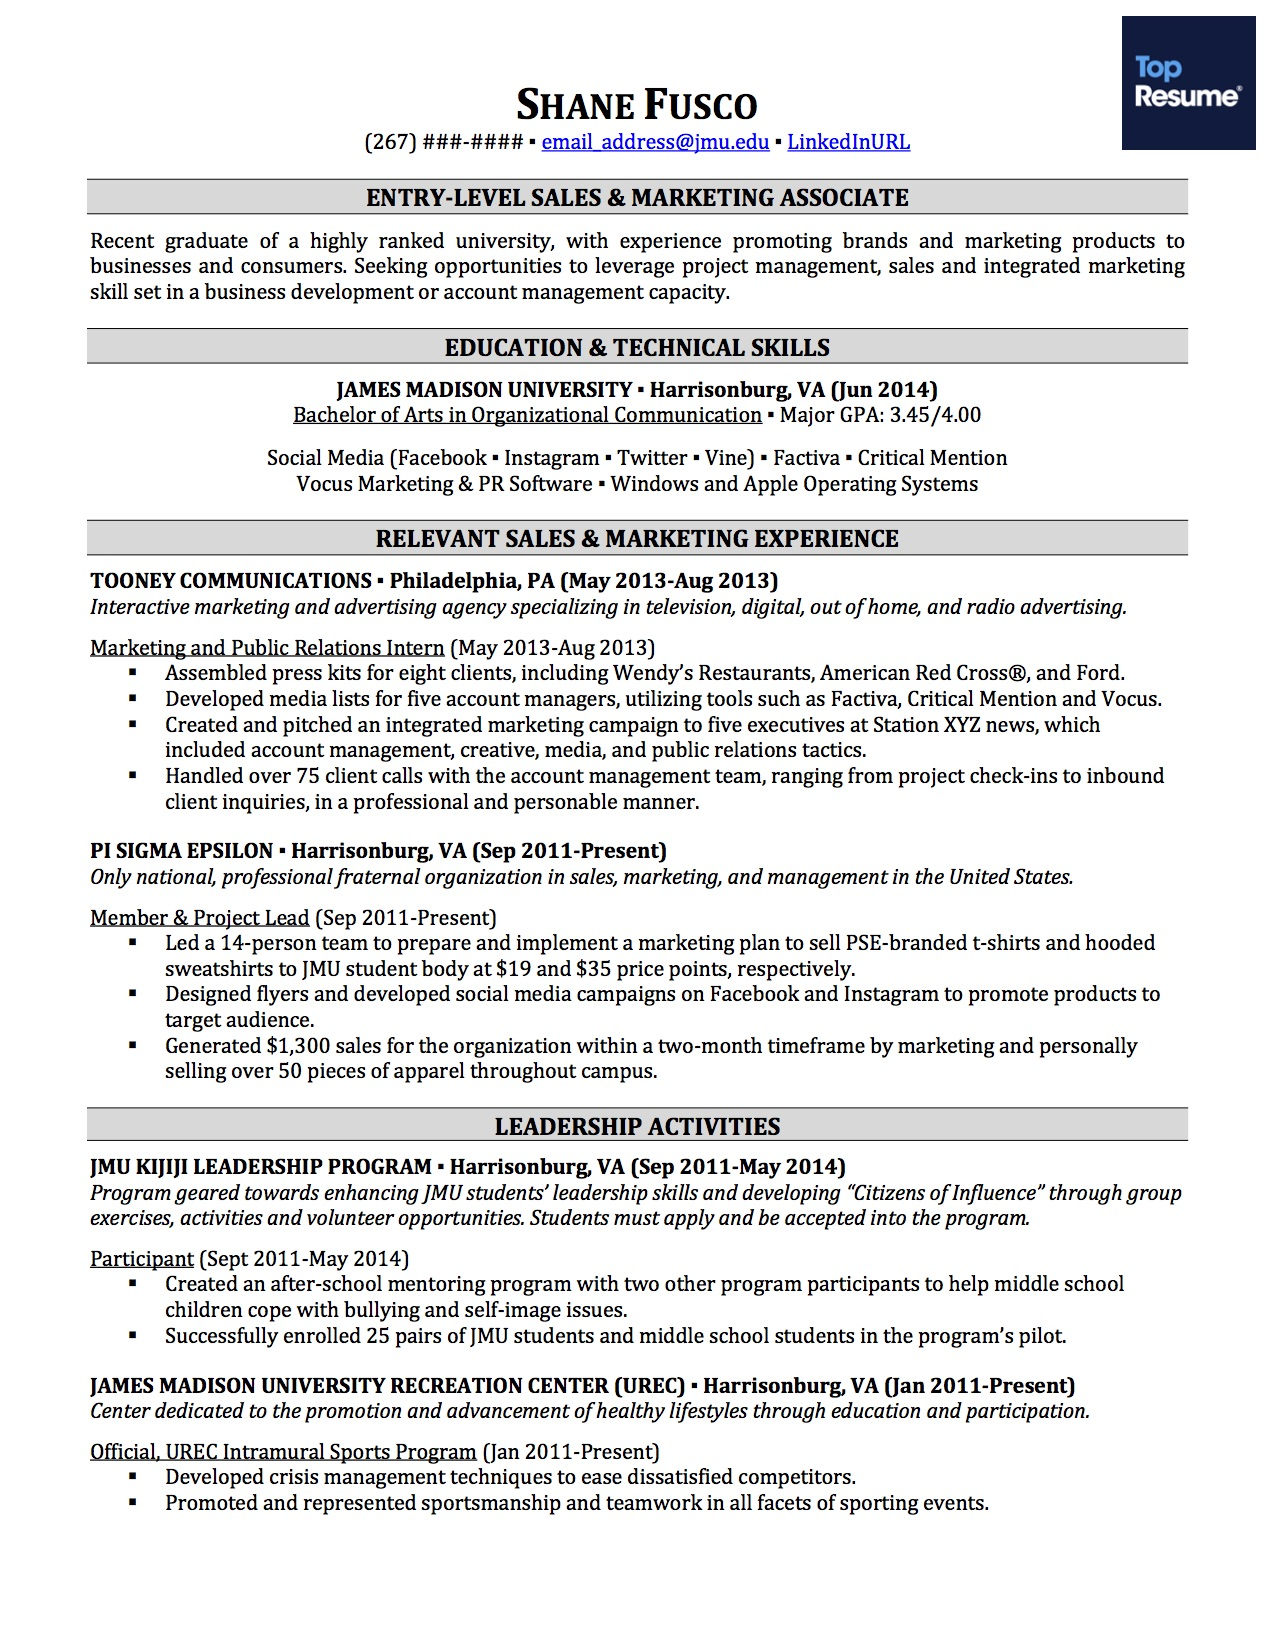 No Experience Resume Inspiration How To Write A Resume With No Job Experience TopResume